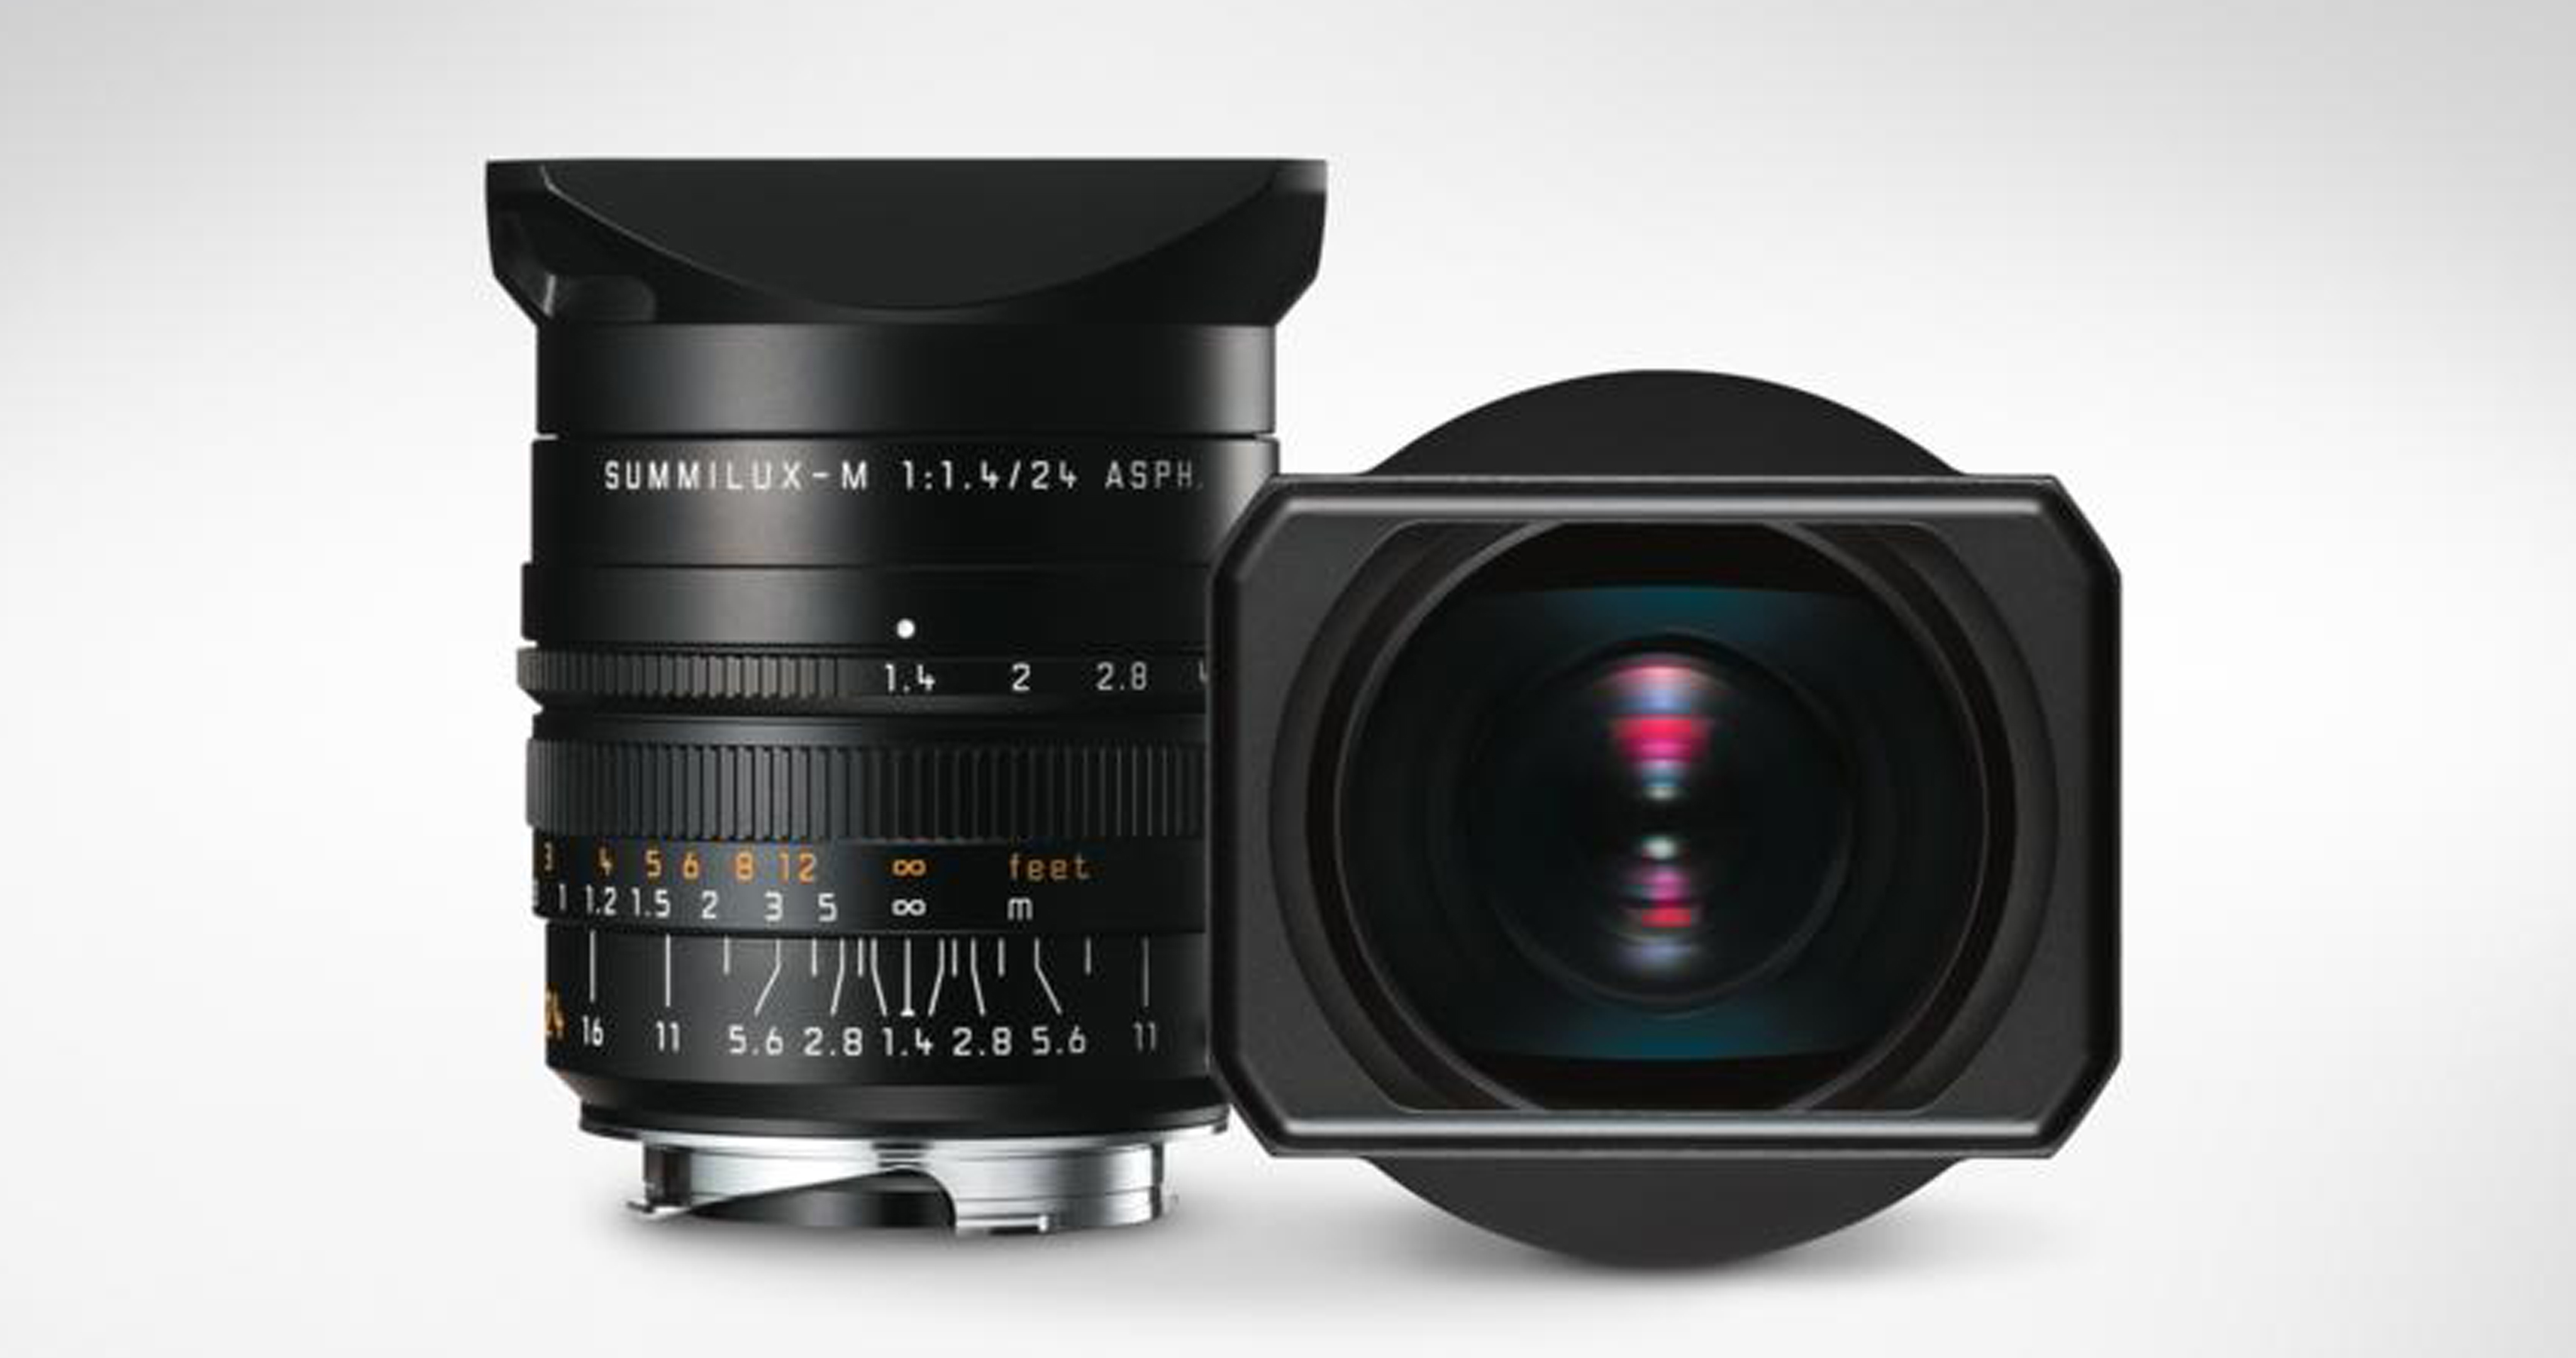 Leica Summilux-M 24mm f1.4 lens review - Leica Photography tutorial - Low Light Photography tips